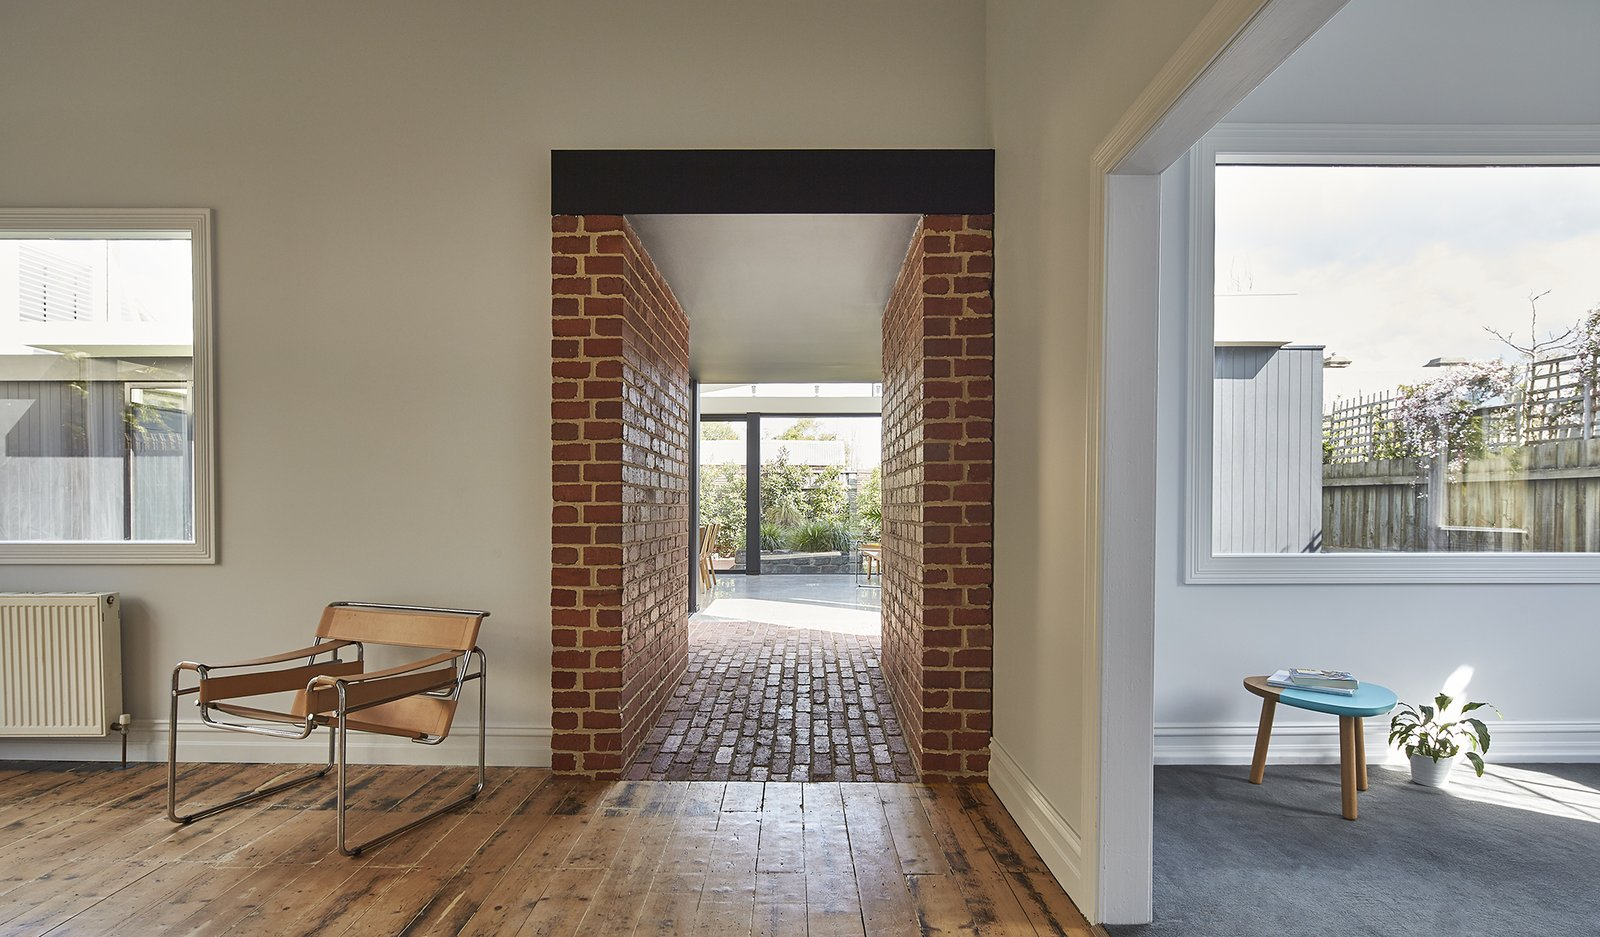 """Instead of extending the new living area from the existing house, we decided to build a stand-alone structure off the front house and connect the two spaces with a central passageway,"" Ong says. This made the back of the home distinctive from the Edwardian front. Recyled brick was used to create the connecting hallway."